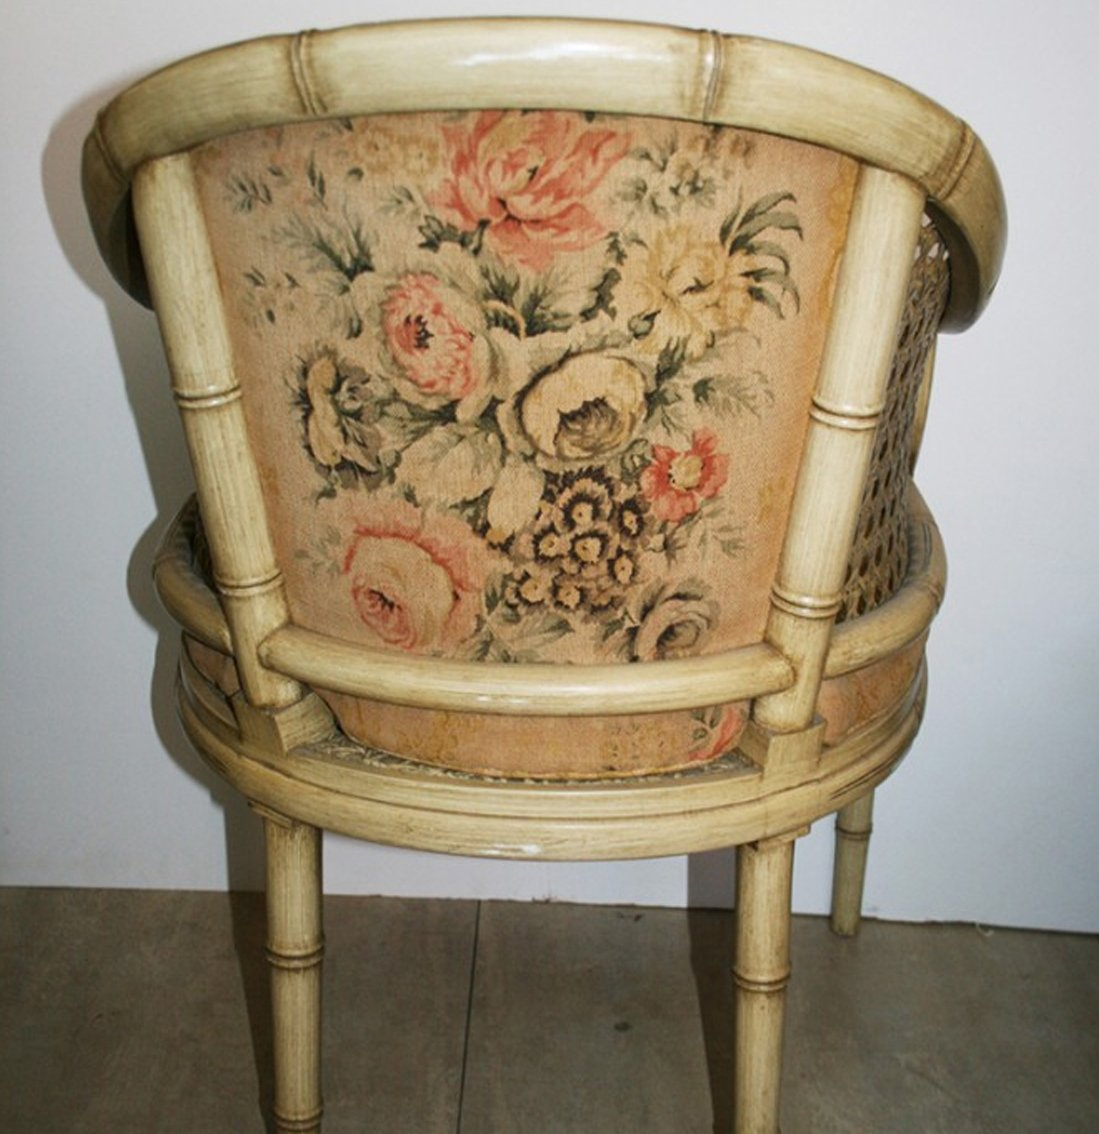 Vintage Cream Lacquered Faux Bamboo Barrel Chair 7. $910.00. Price per piece - Vintage Cream Lacquered Faux Bamboo Barrel Chair For Sale At Pamono